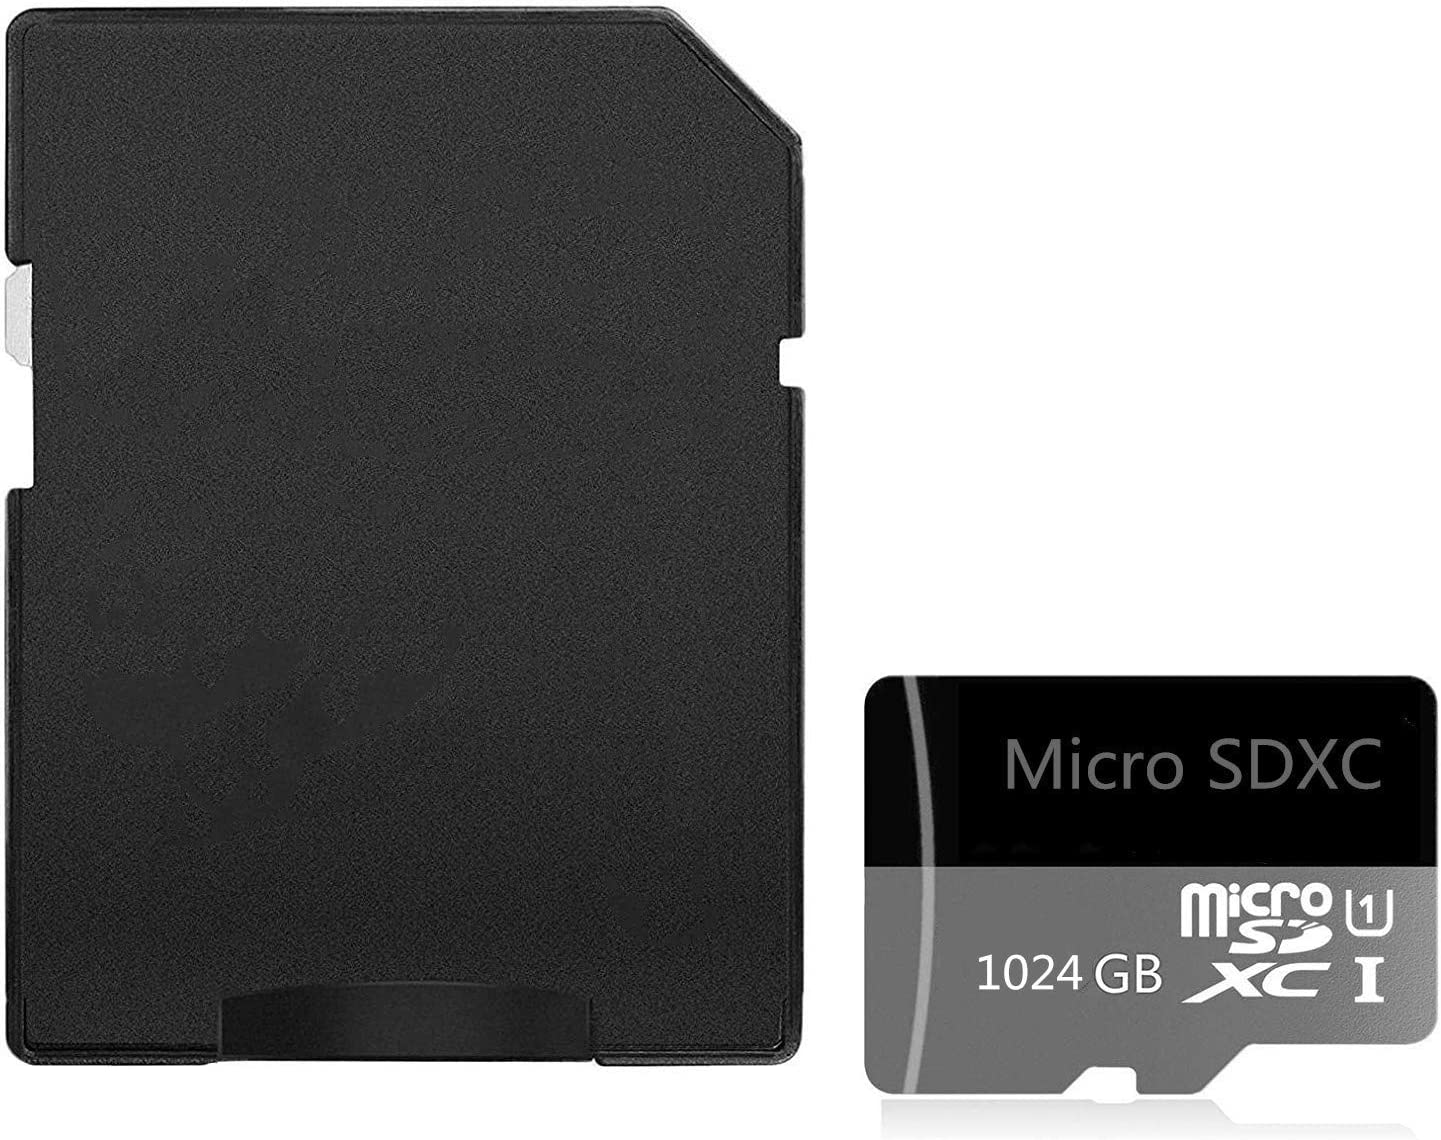 Micro SD Card 1024 GB High Speed Class 10 Micro SD SDXC Card with Adapter